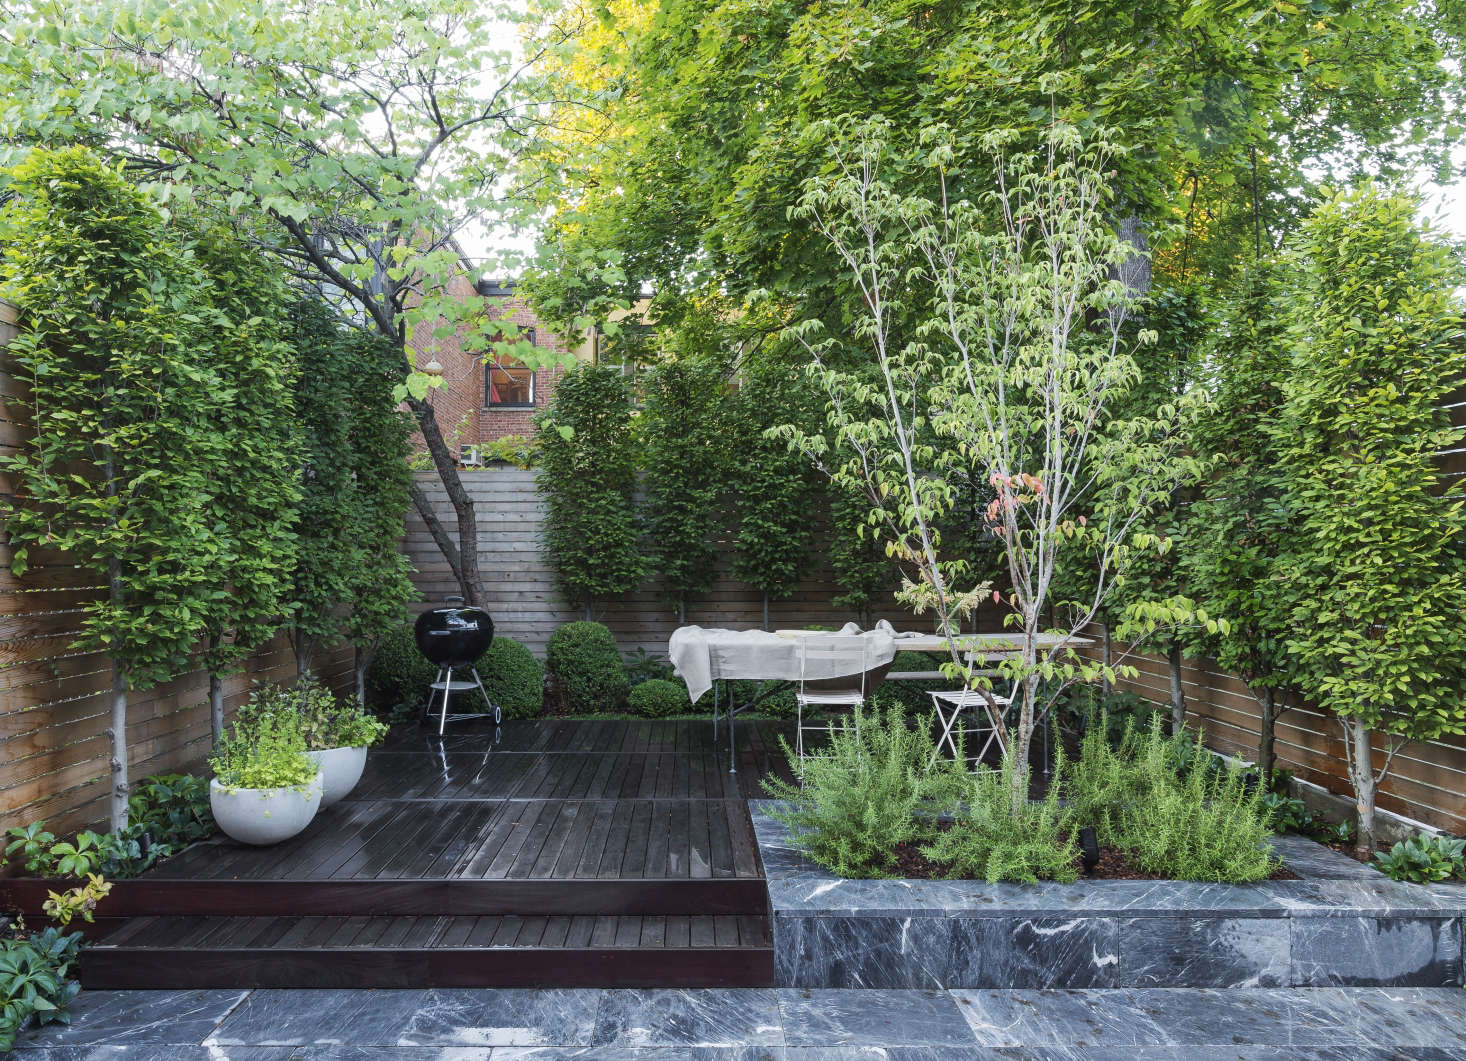 Garden designer Brook Klausing paired imported marble pavers with wooden decking to set off their striking variation in pattern in color in a small Brooklyn backyard. Photograph by Matthew Williams for Gardenista.